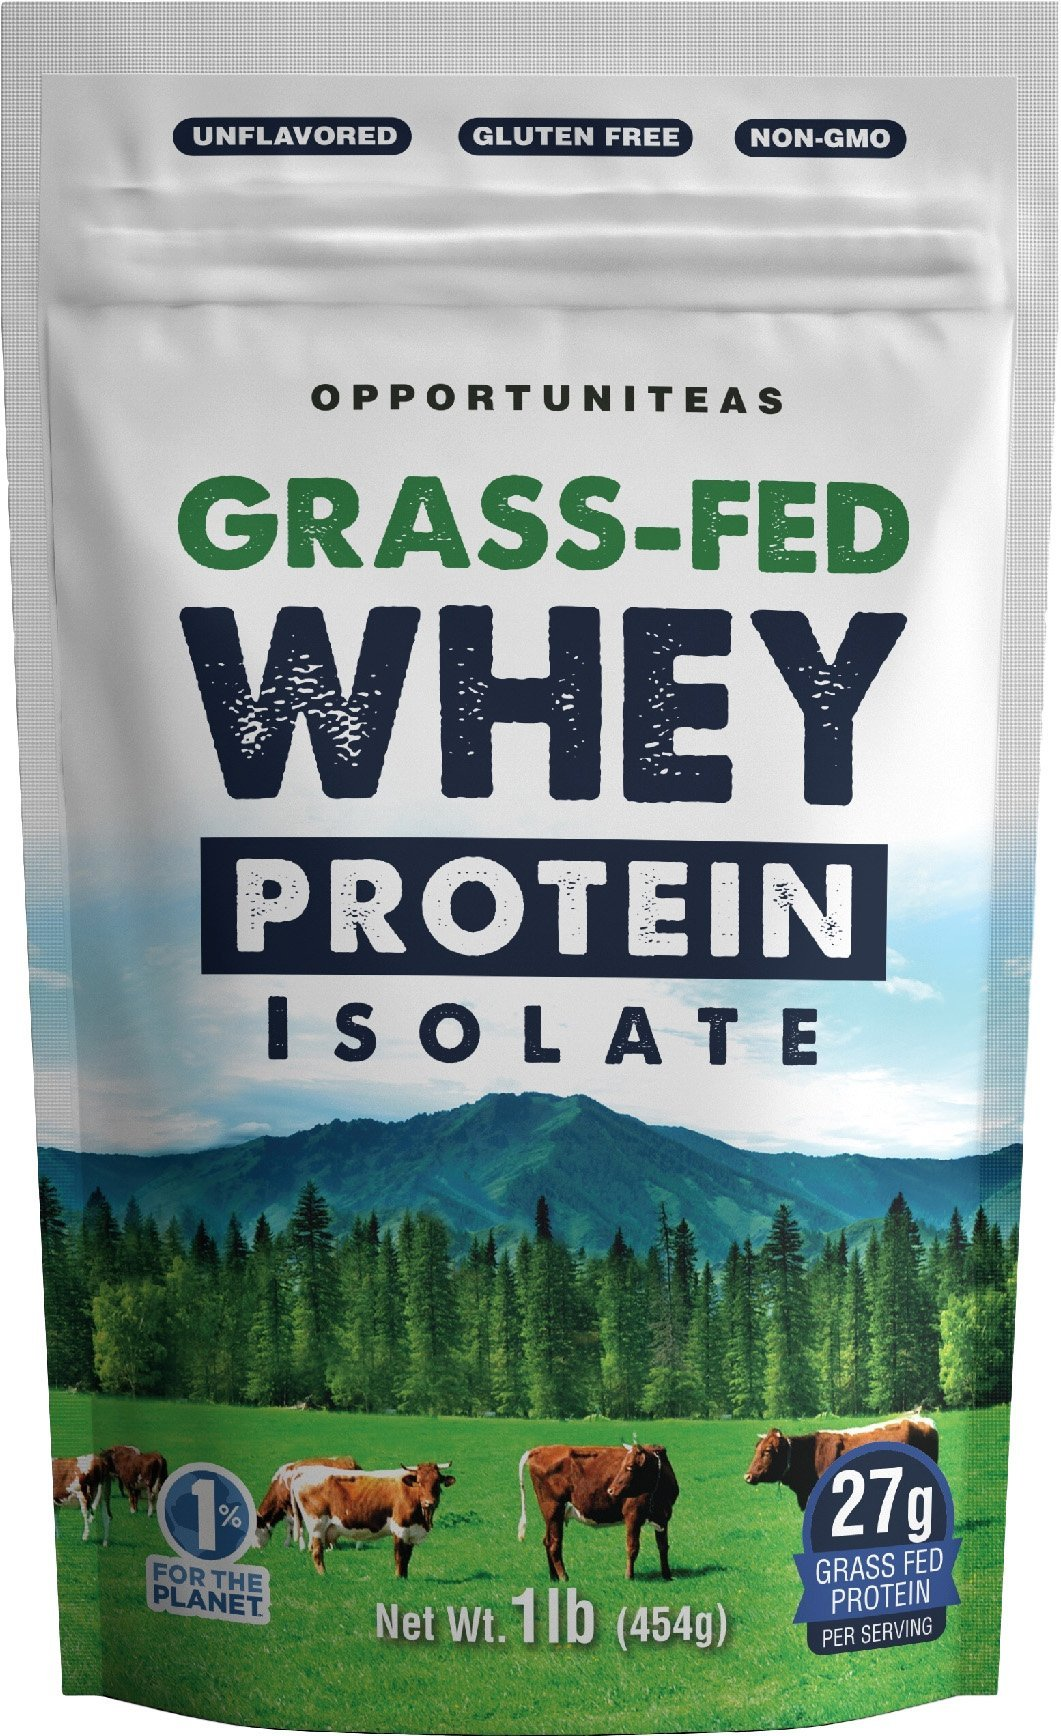 Grass Fed Whey Protein Powder Isolate - Unflavored + Cold Processed + Undenatured - Pure Wisconsin Grassfed Protein For A Shake, Smoothie, Drink, or Food - Natural + Non GMO + No Gluten - 1 pound